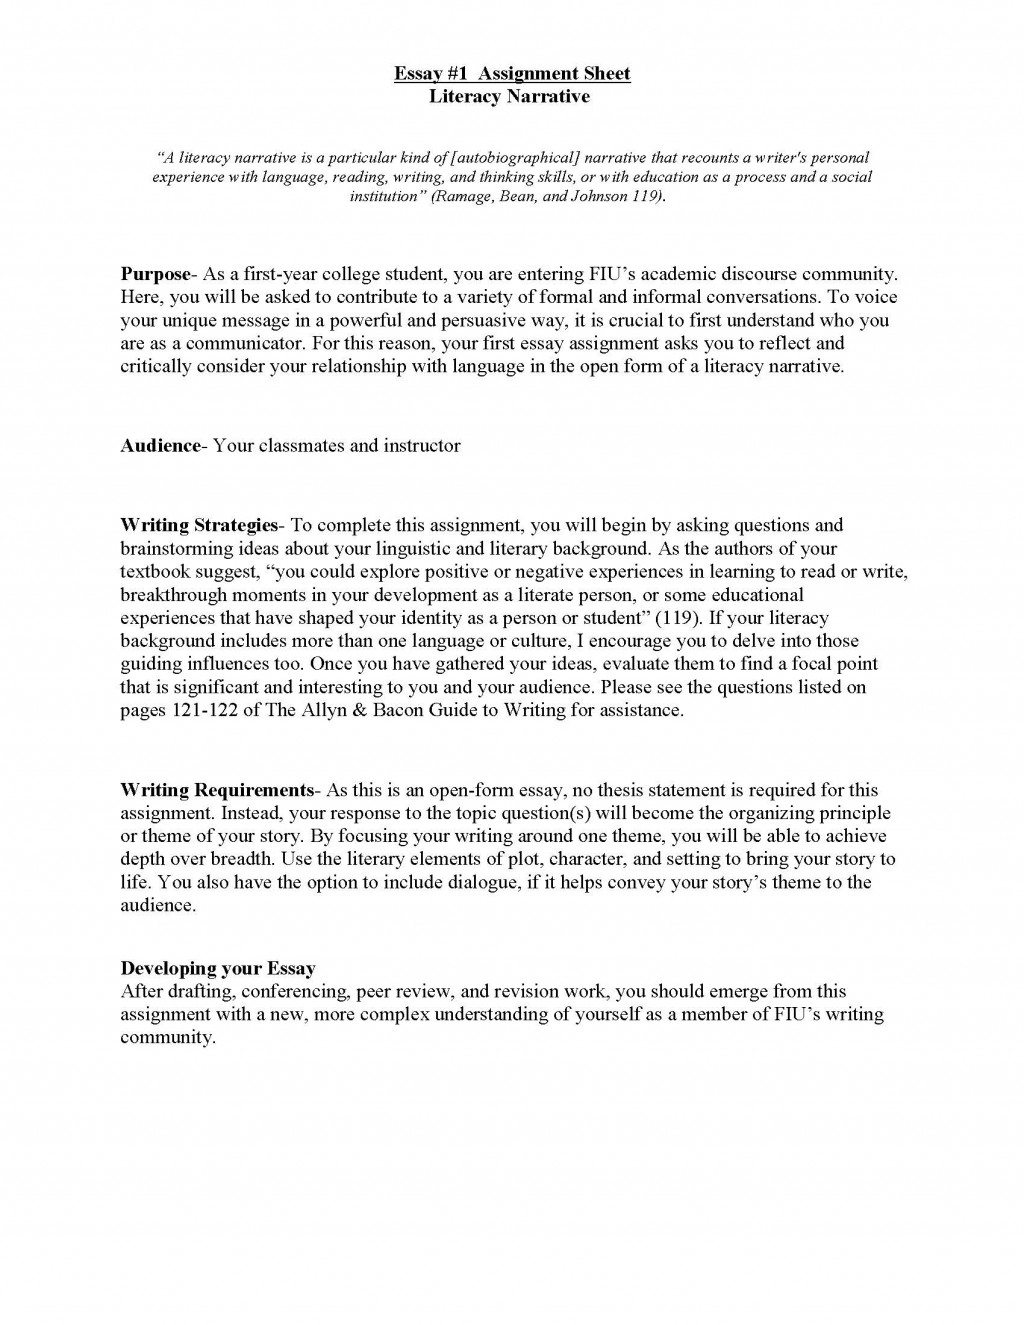 009 Literacy Narrative Unit Assignment Spring 2012 Page 1 Research Paper List Of Topics For In Sensational Education Large